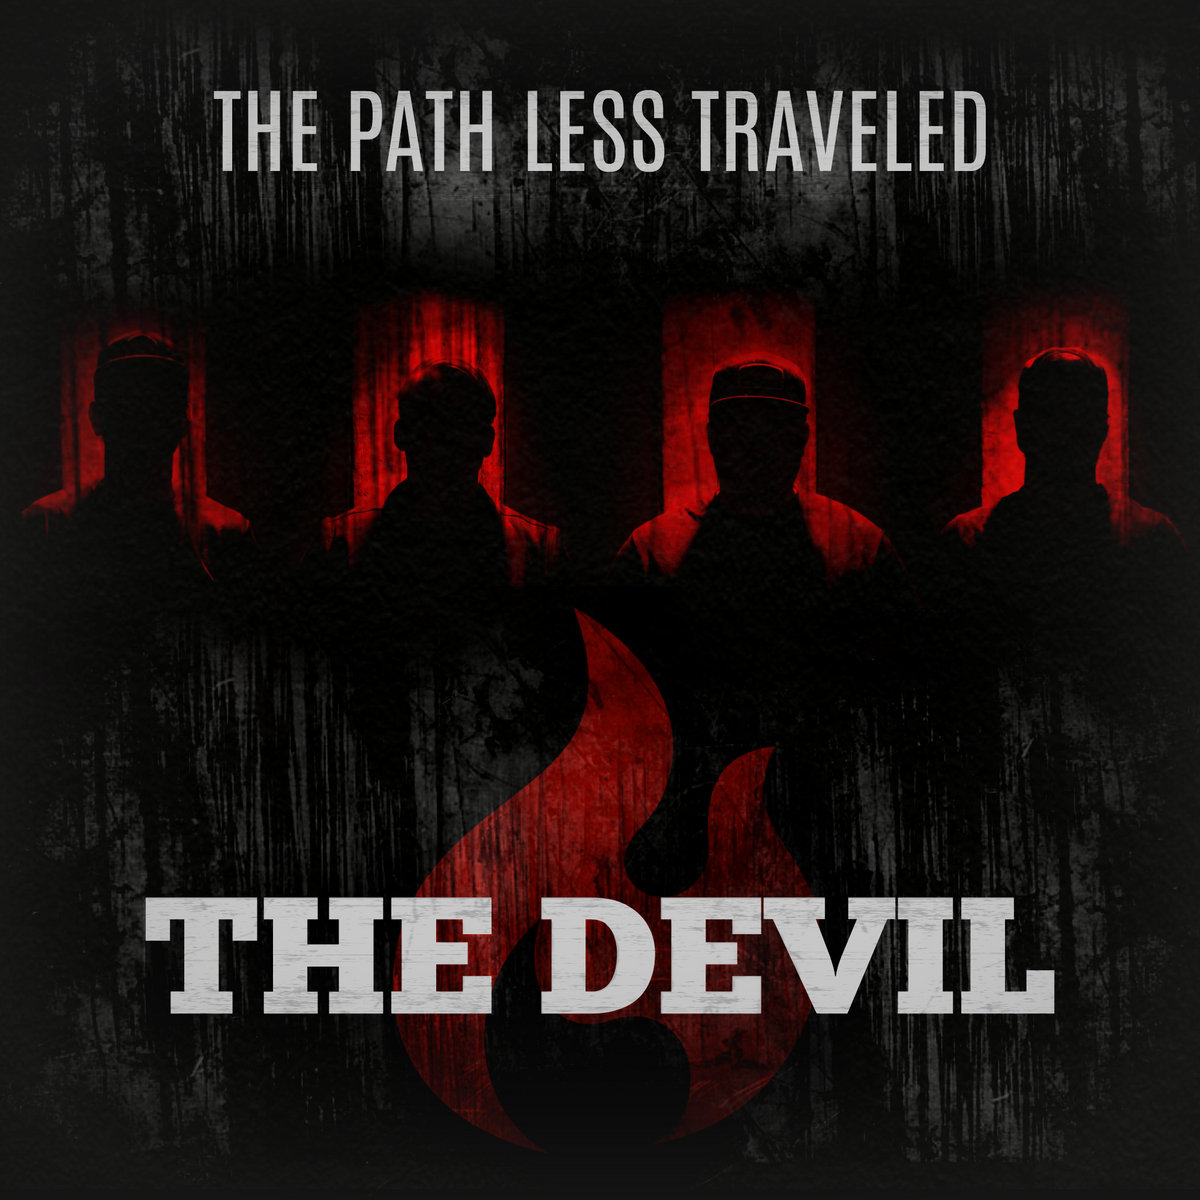 The Devil by The Path Less Traveled